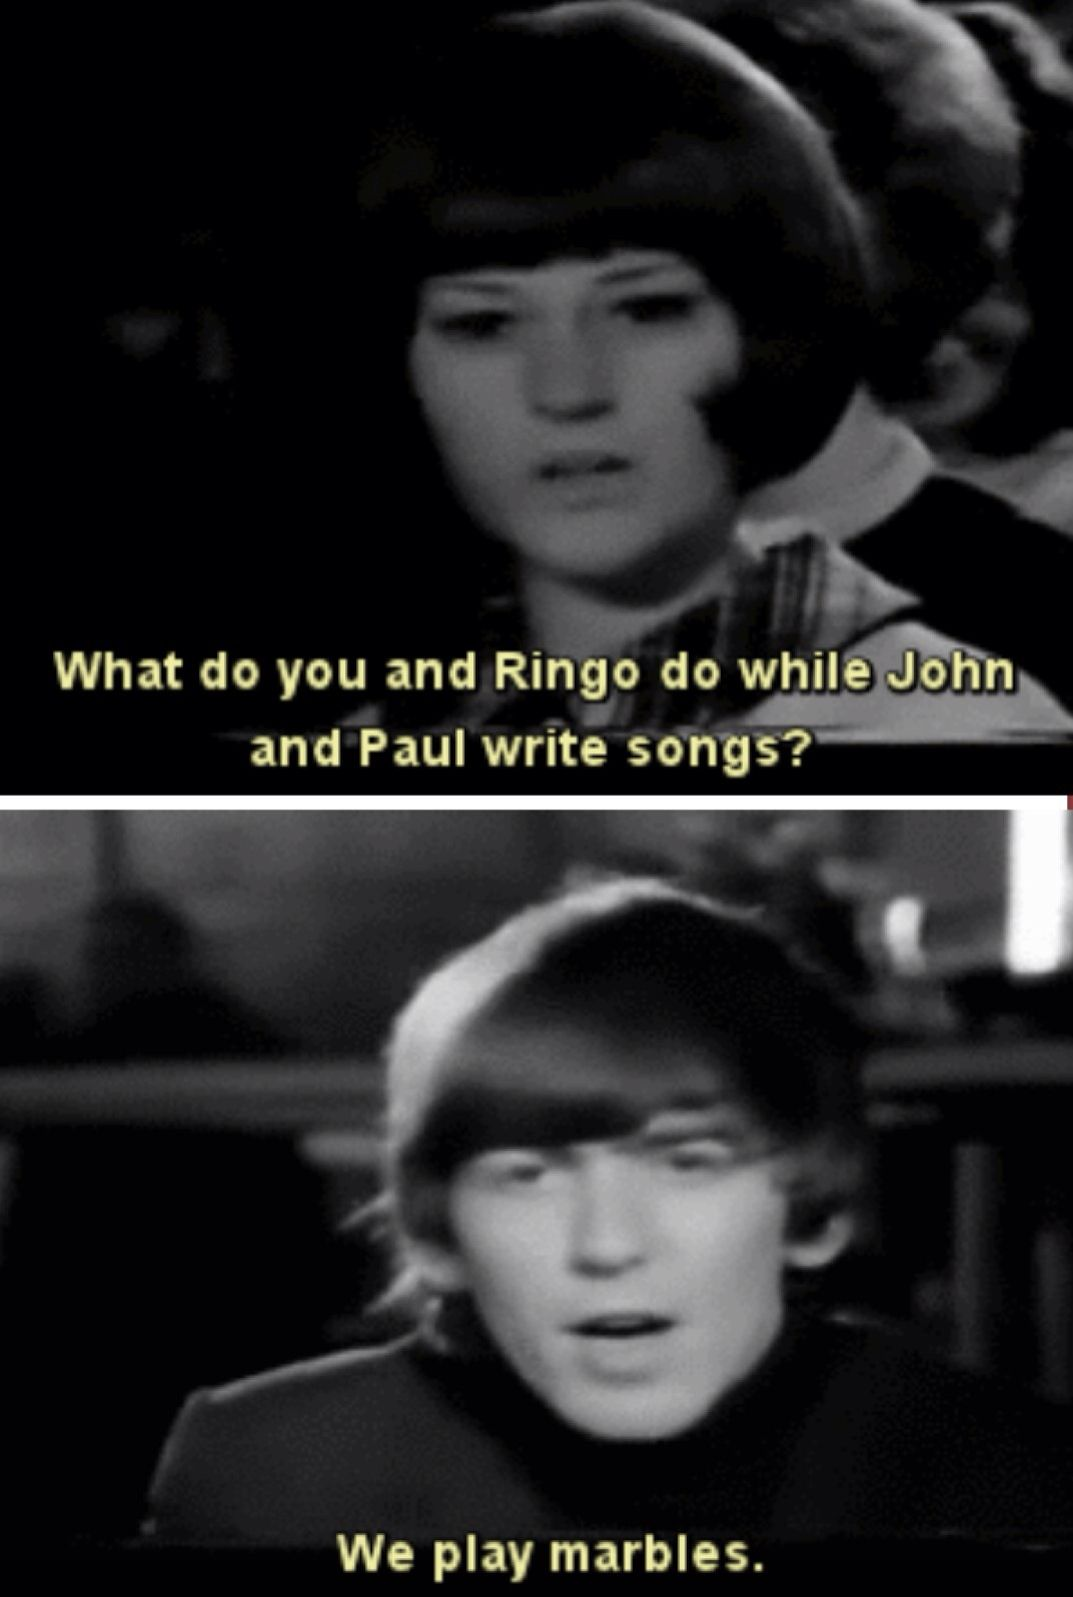 Harrison everyone, now that's funny. The beatles